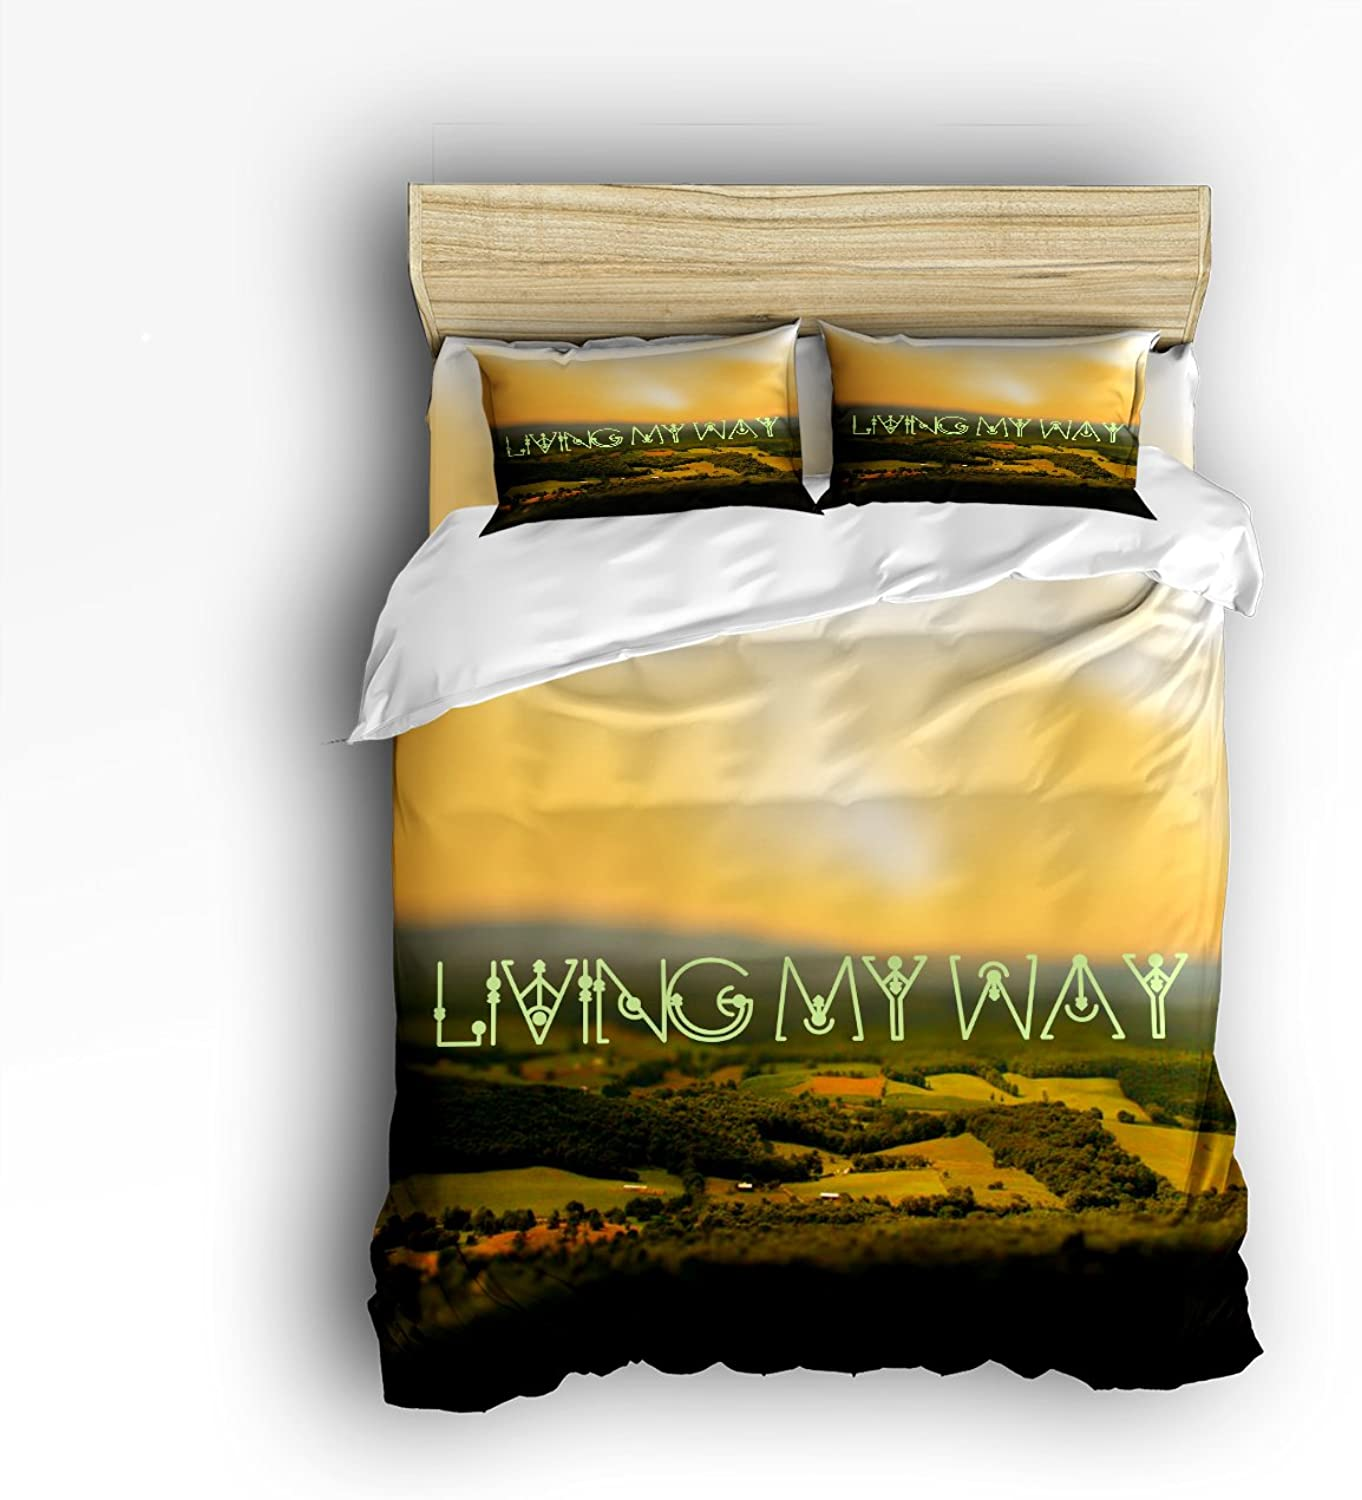 Libaoge 4 Piece Bed Sheets Set, Living My Life with Panoramic View of Village, 1 Flat Sheet 1 Duvet Cover and 2 Pillow Cases